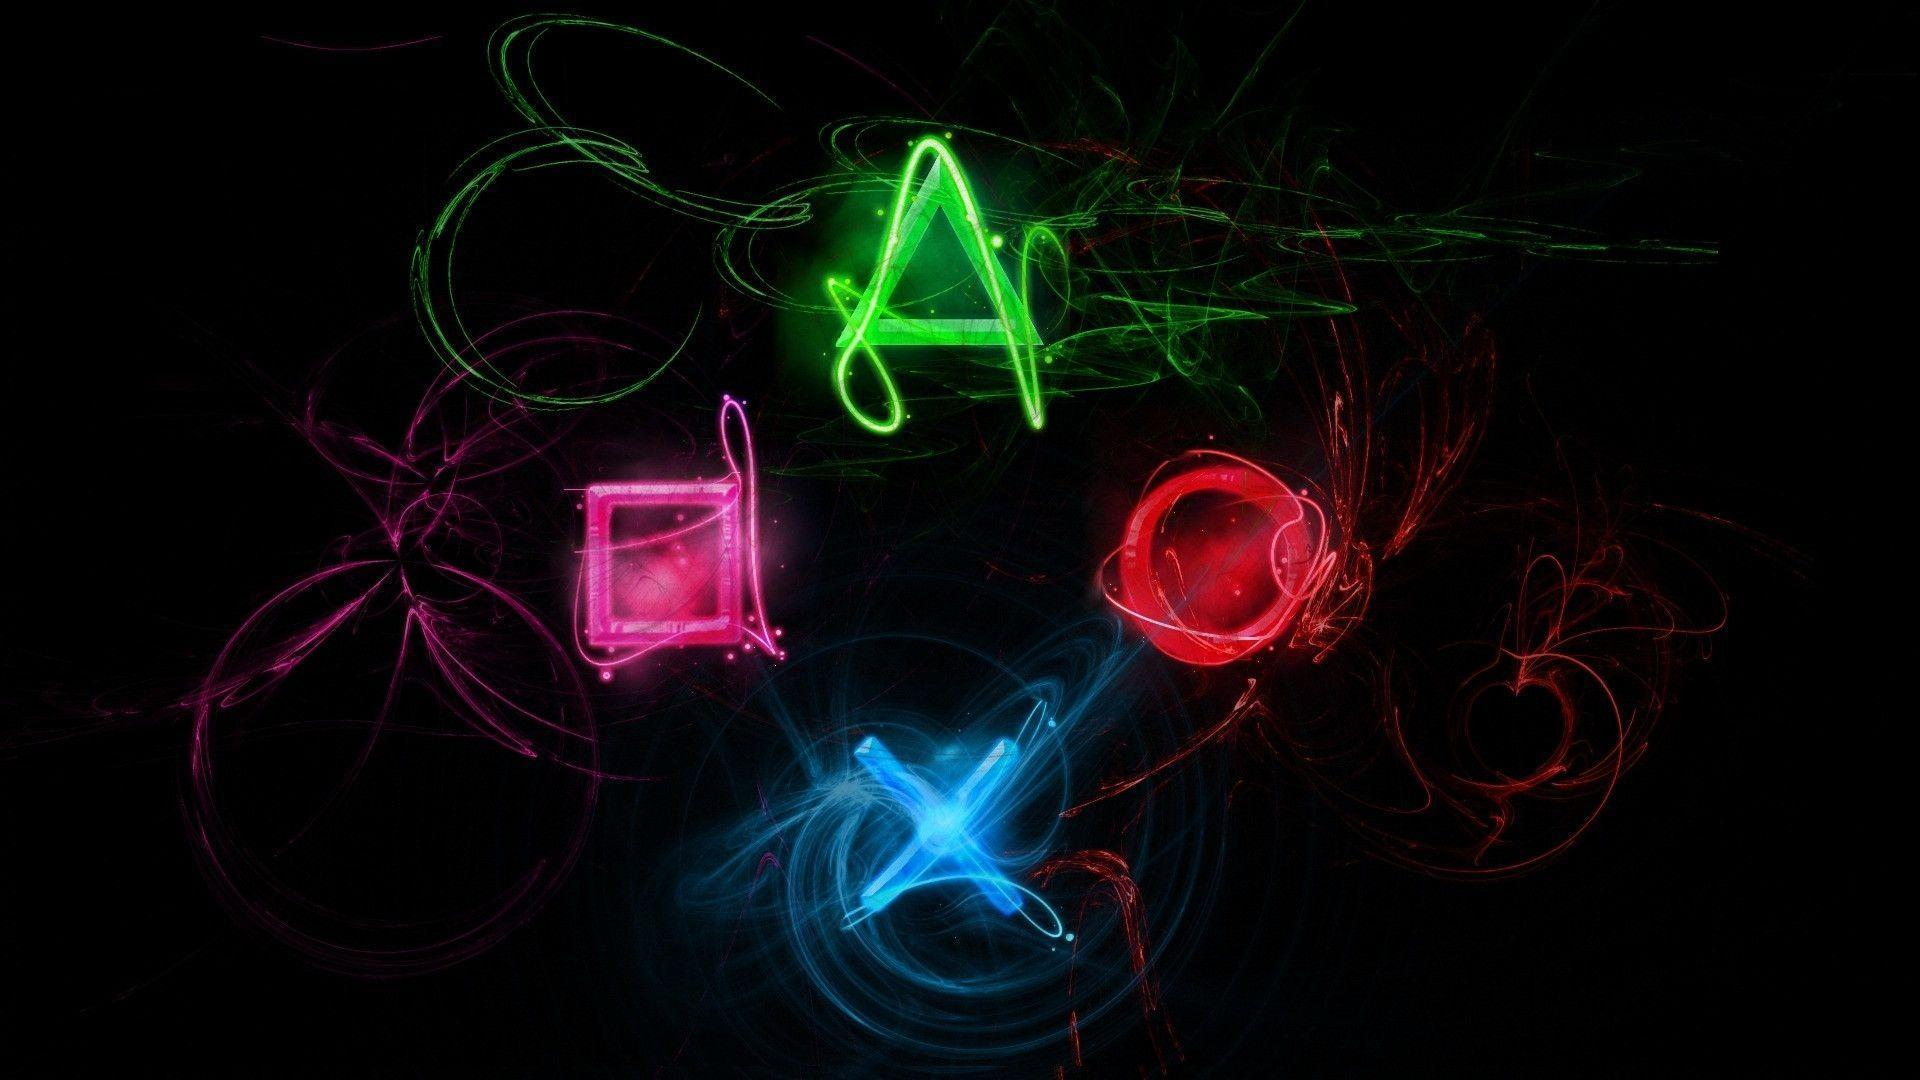 playstation 3 wallpapers 1080p wallpaper cave